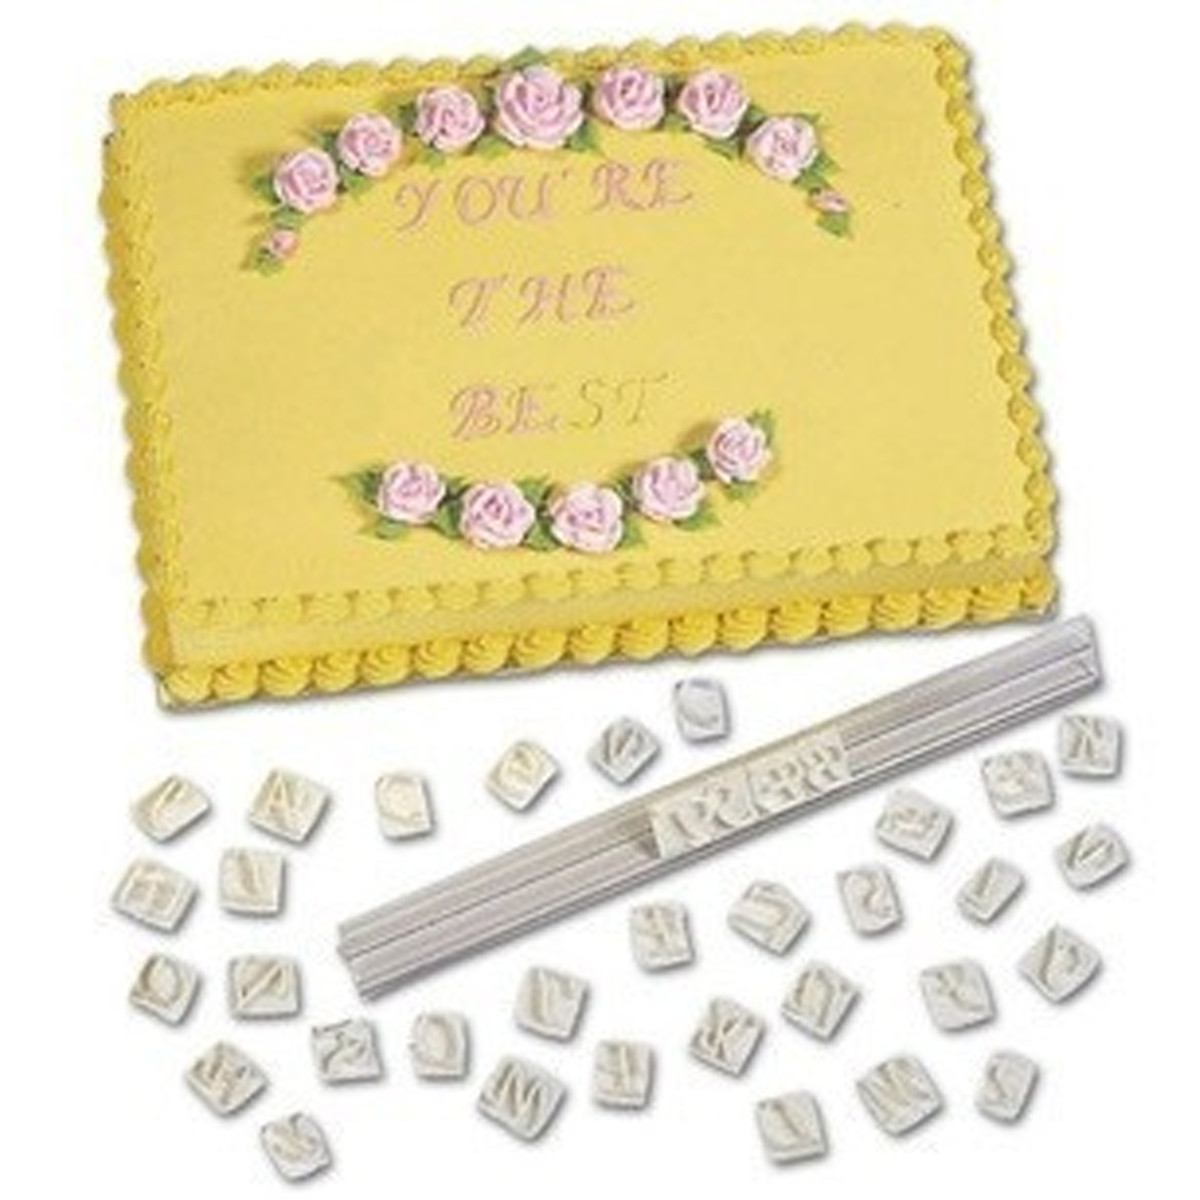 Cake Decorating Letter Cutters : Alphabet Letter Cake Cookie Biscuit Cutter Embosser Fondant Decorating Mold eBay